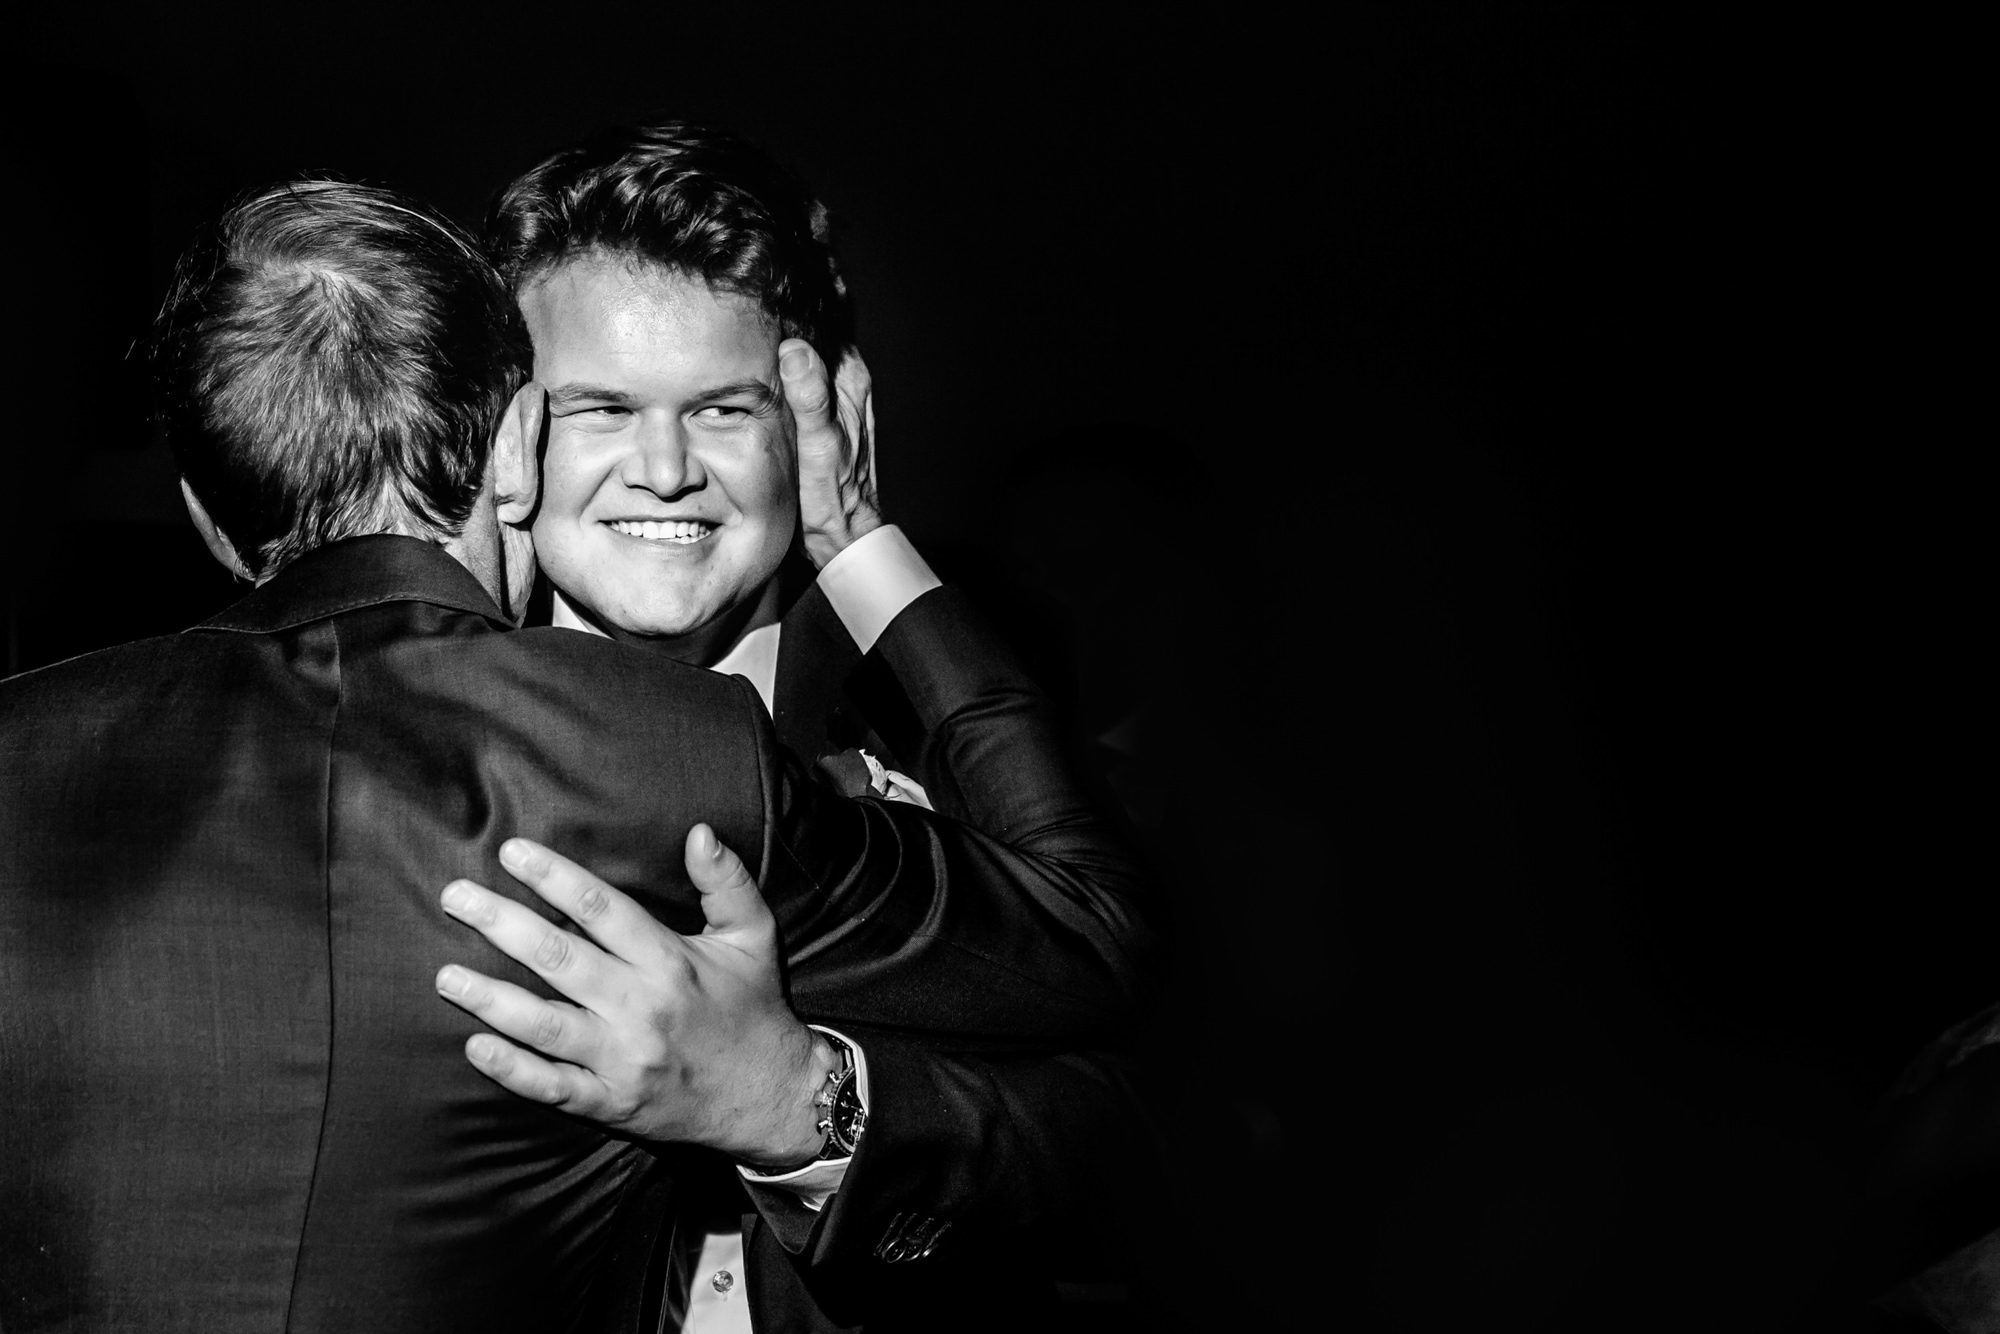 Father hugging groom - photo by Phillipe Swiggers